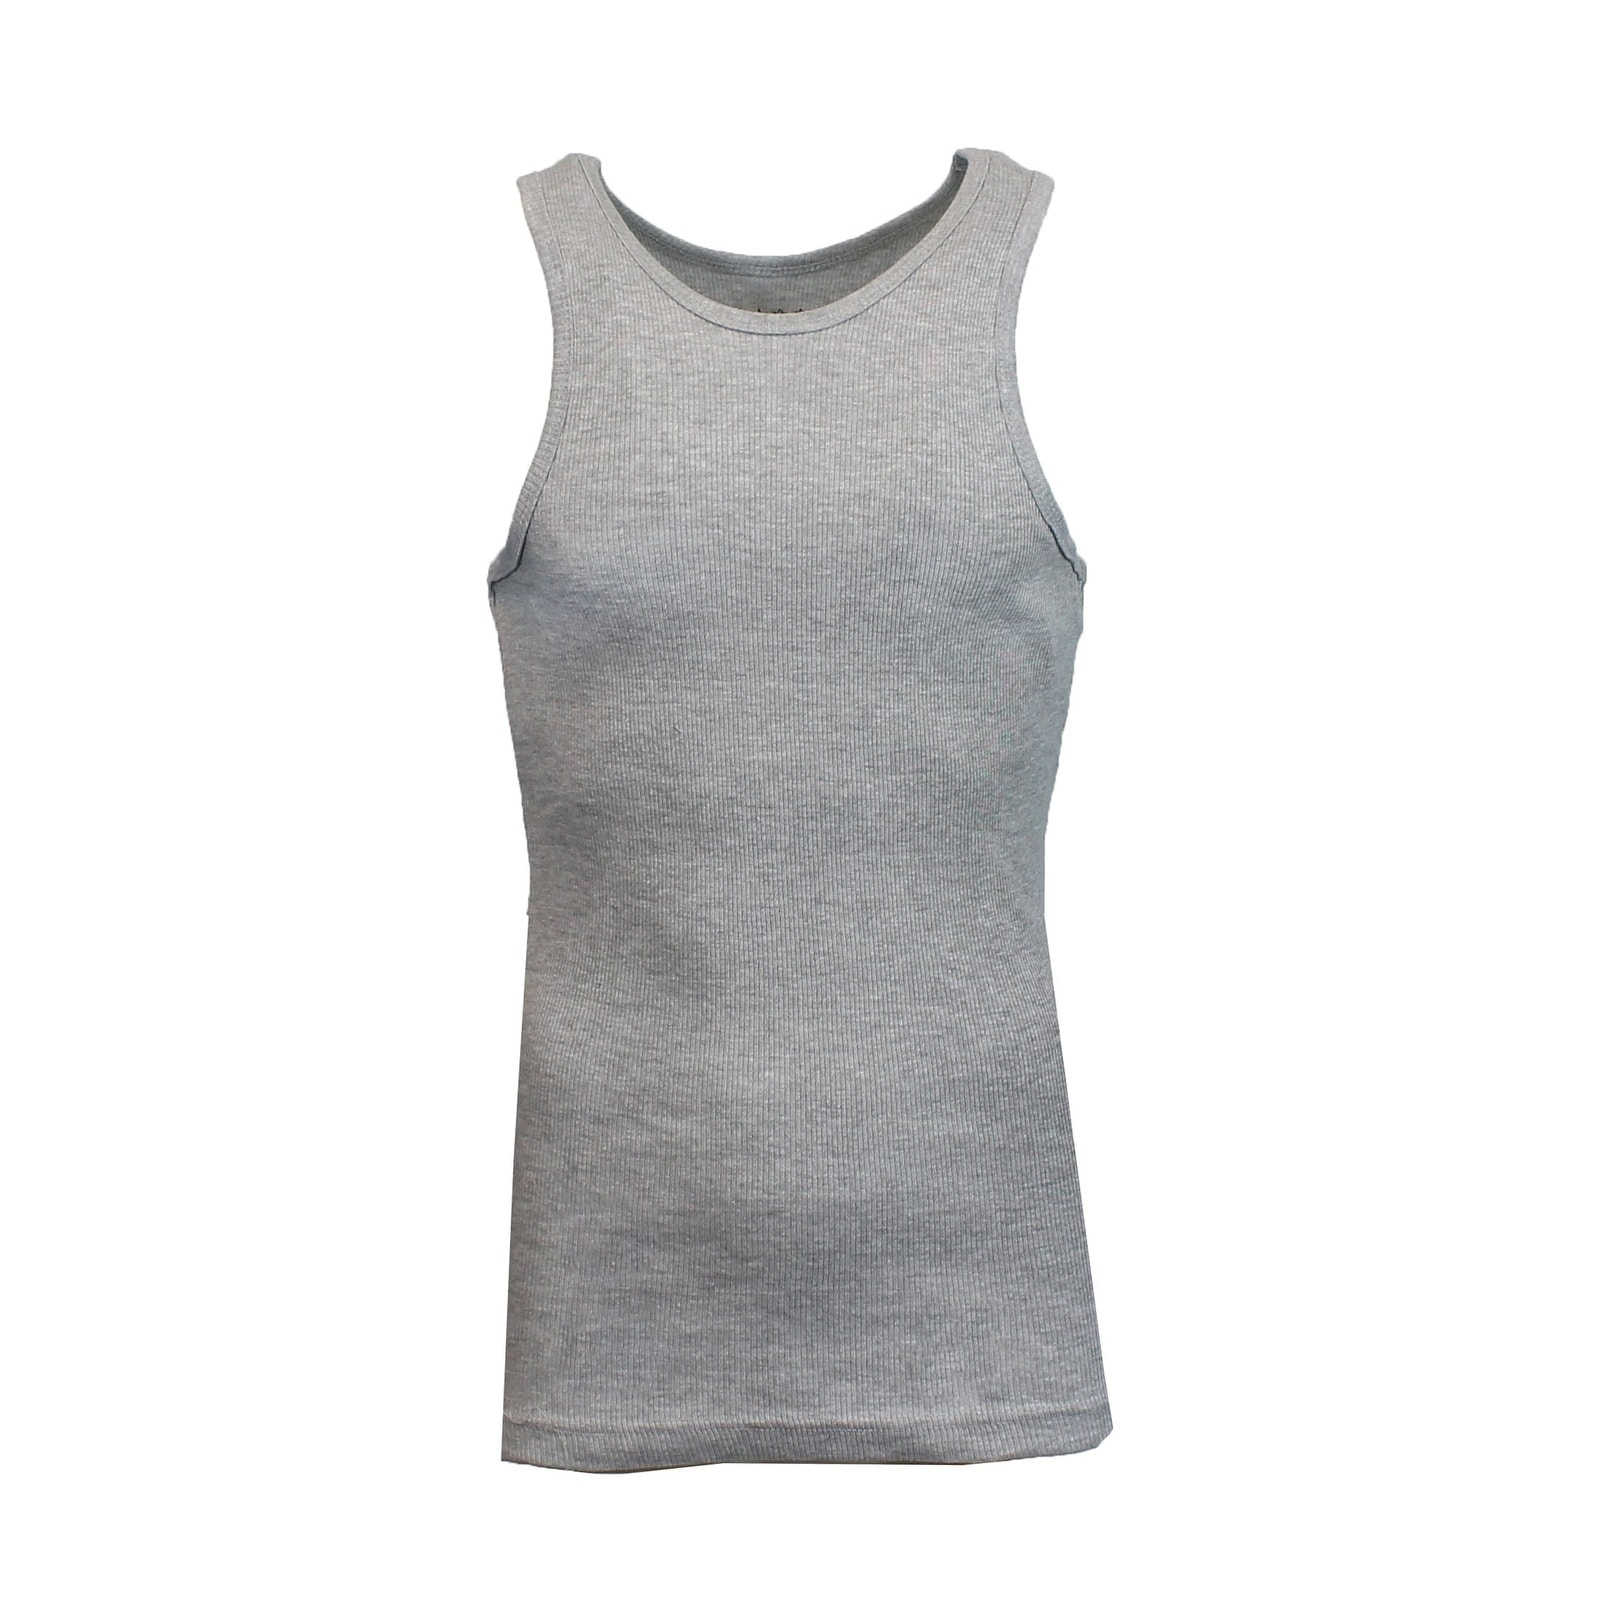 ddd97cb3cc4db Shop Galaxy By Harvic Men s Heavyweight Ribbed Tank Tops - On Sale - Free  Shipping On Orders Over  45 - Overstock - 20652440